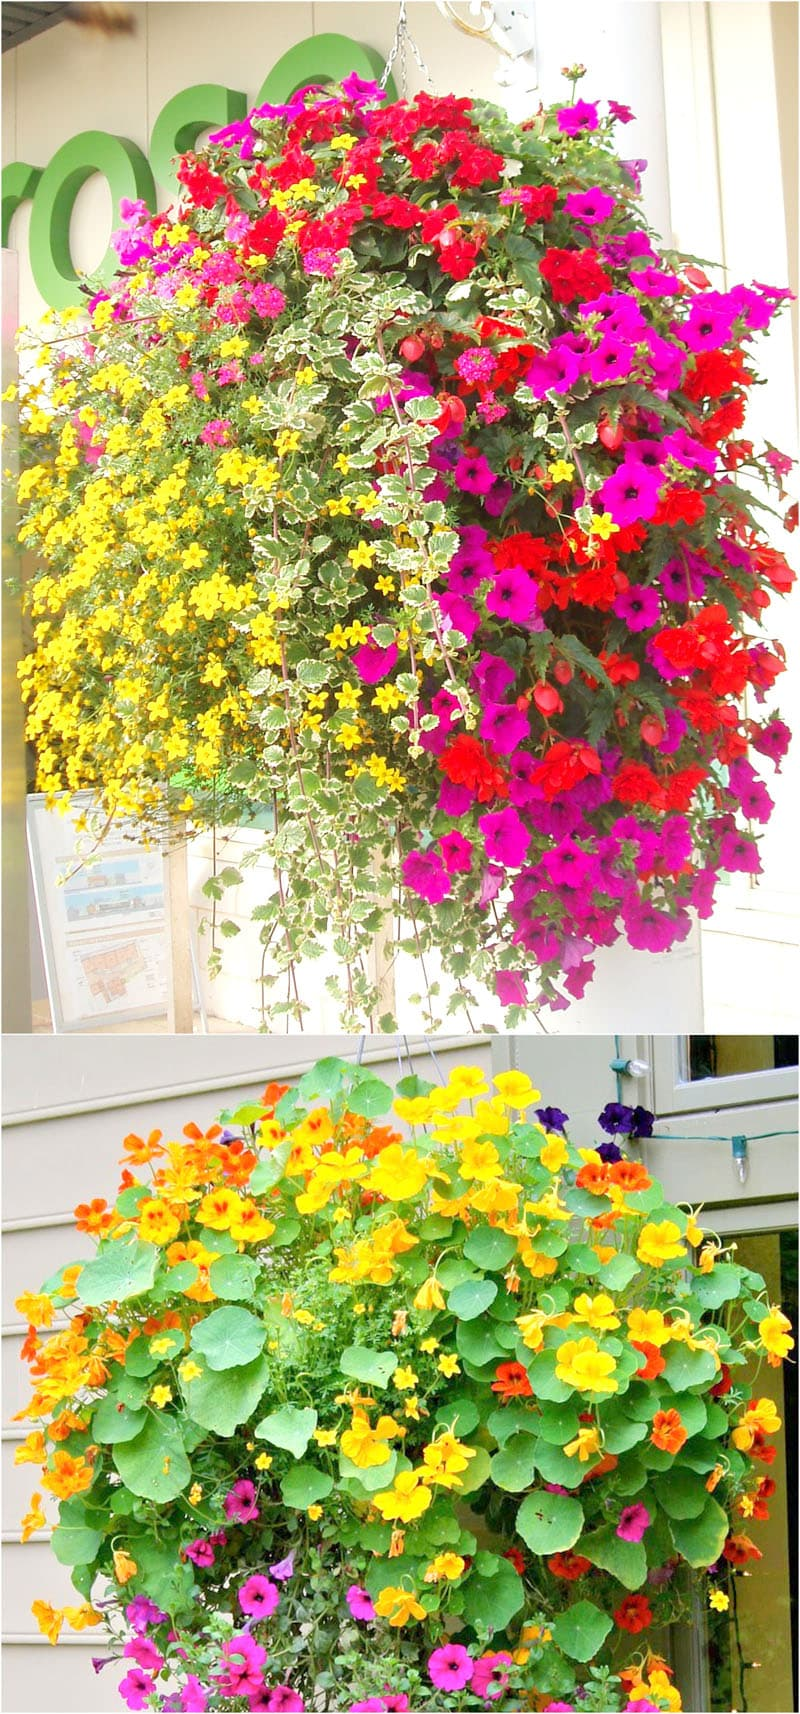 How to plant beautiful flower hanging baskets 20 best hanging best plants and flowers for hanging baskets in full sun or half day sun izmirmasajfo